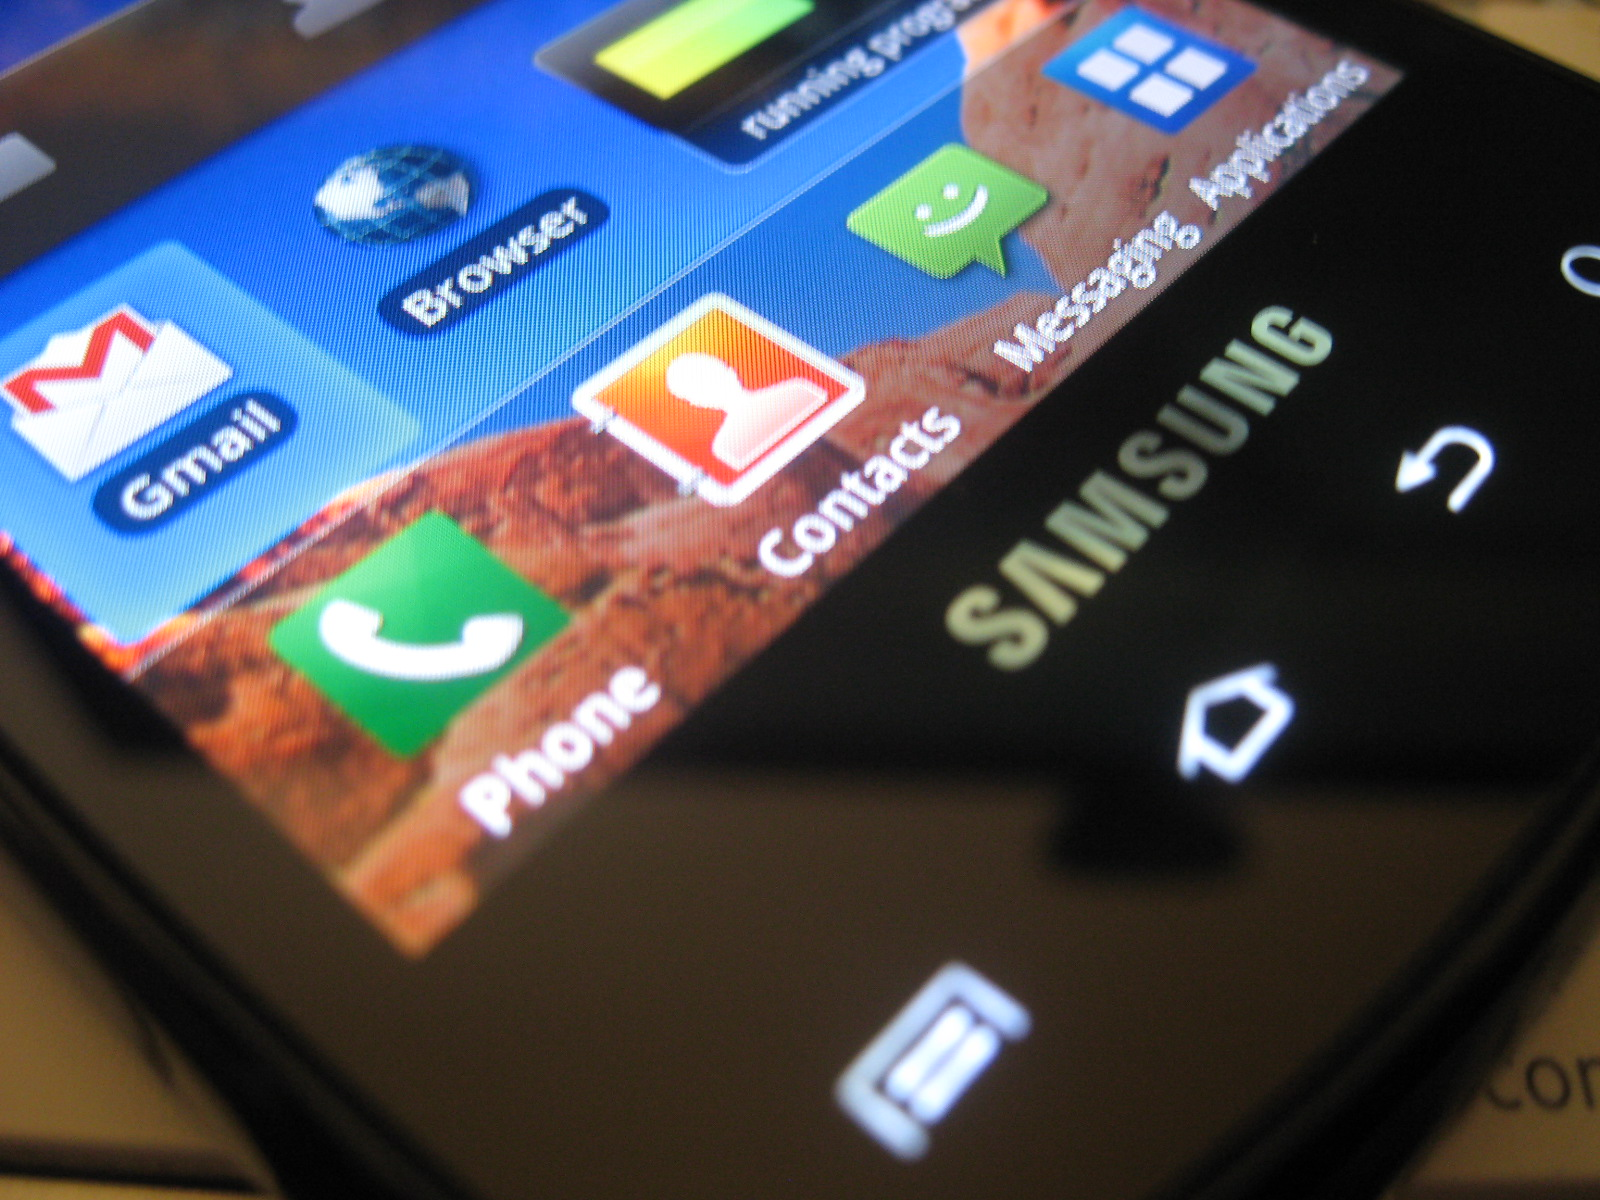 TNW Mobile Review: Samsung Epic 4G